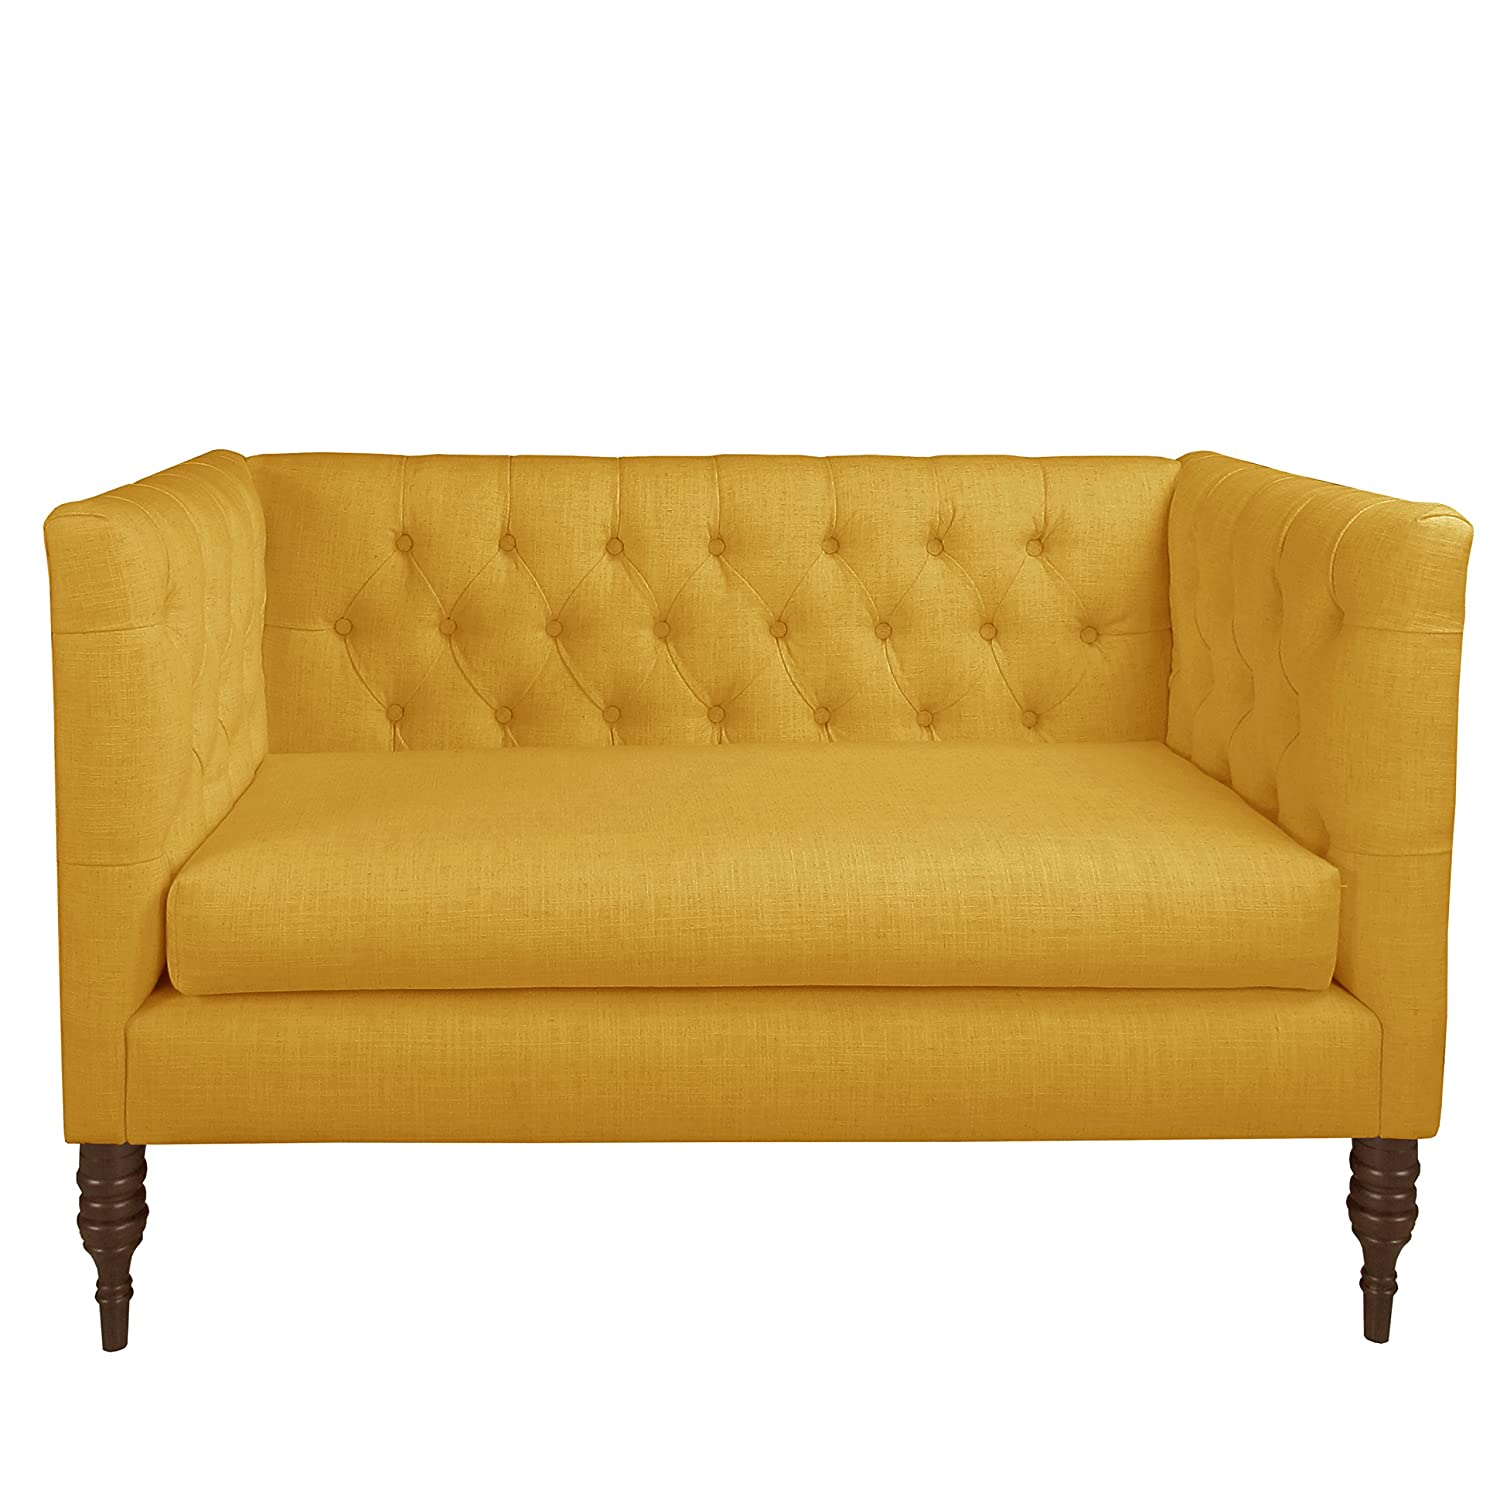 Amazon com skyline furniture tufted settee in linen french yellow yellow kitchen dining